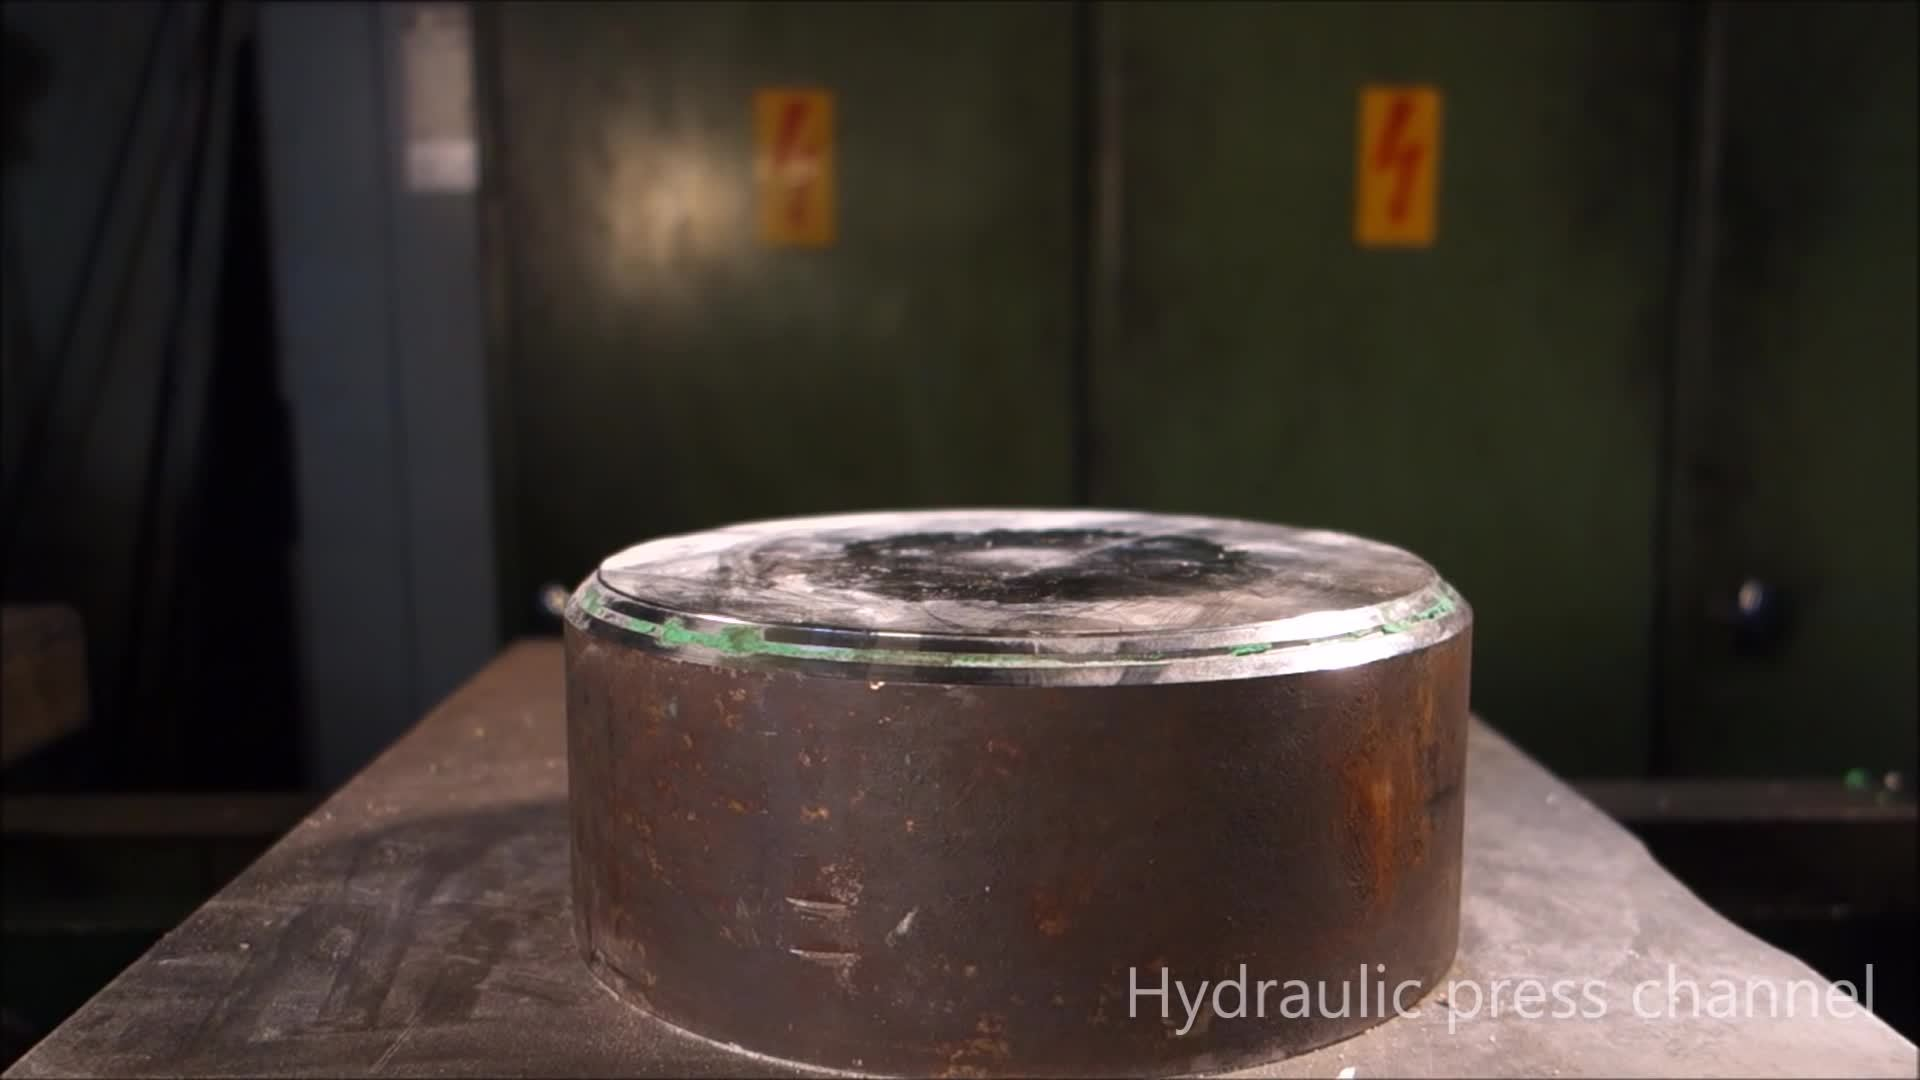 hydraulic press, hydraulic press channel, hydraulicpresschannel, Hopes and Dreams GIFs